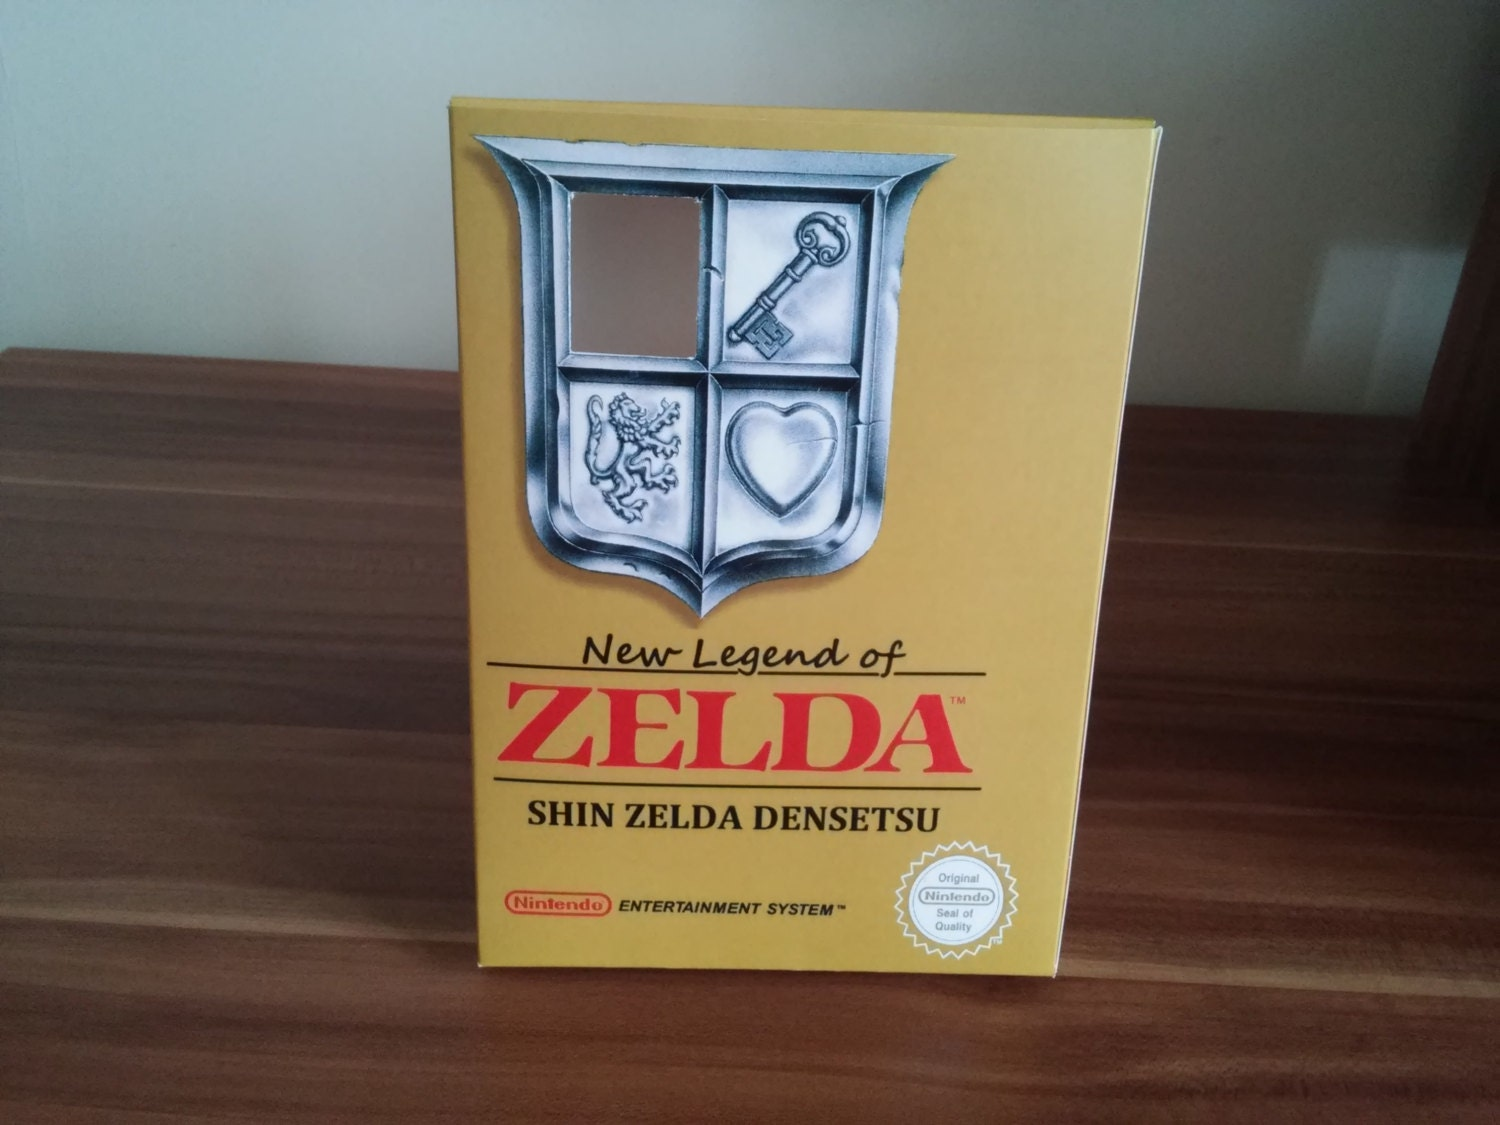 NES New Legend of Zelda  Shin Zelda Densetun ROM hack Repro Box NO Game Included